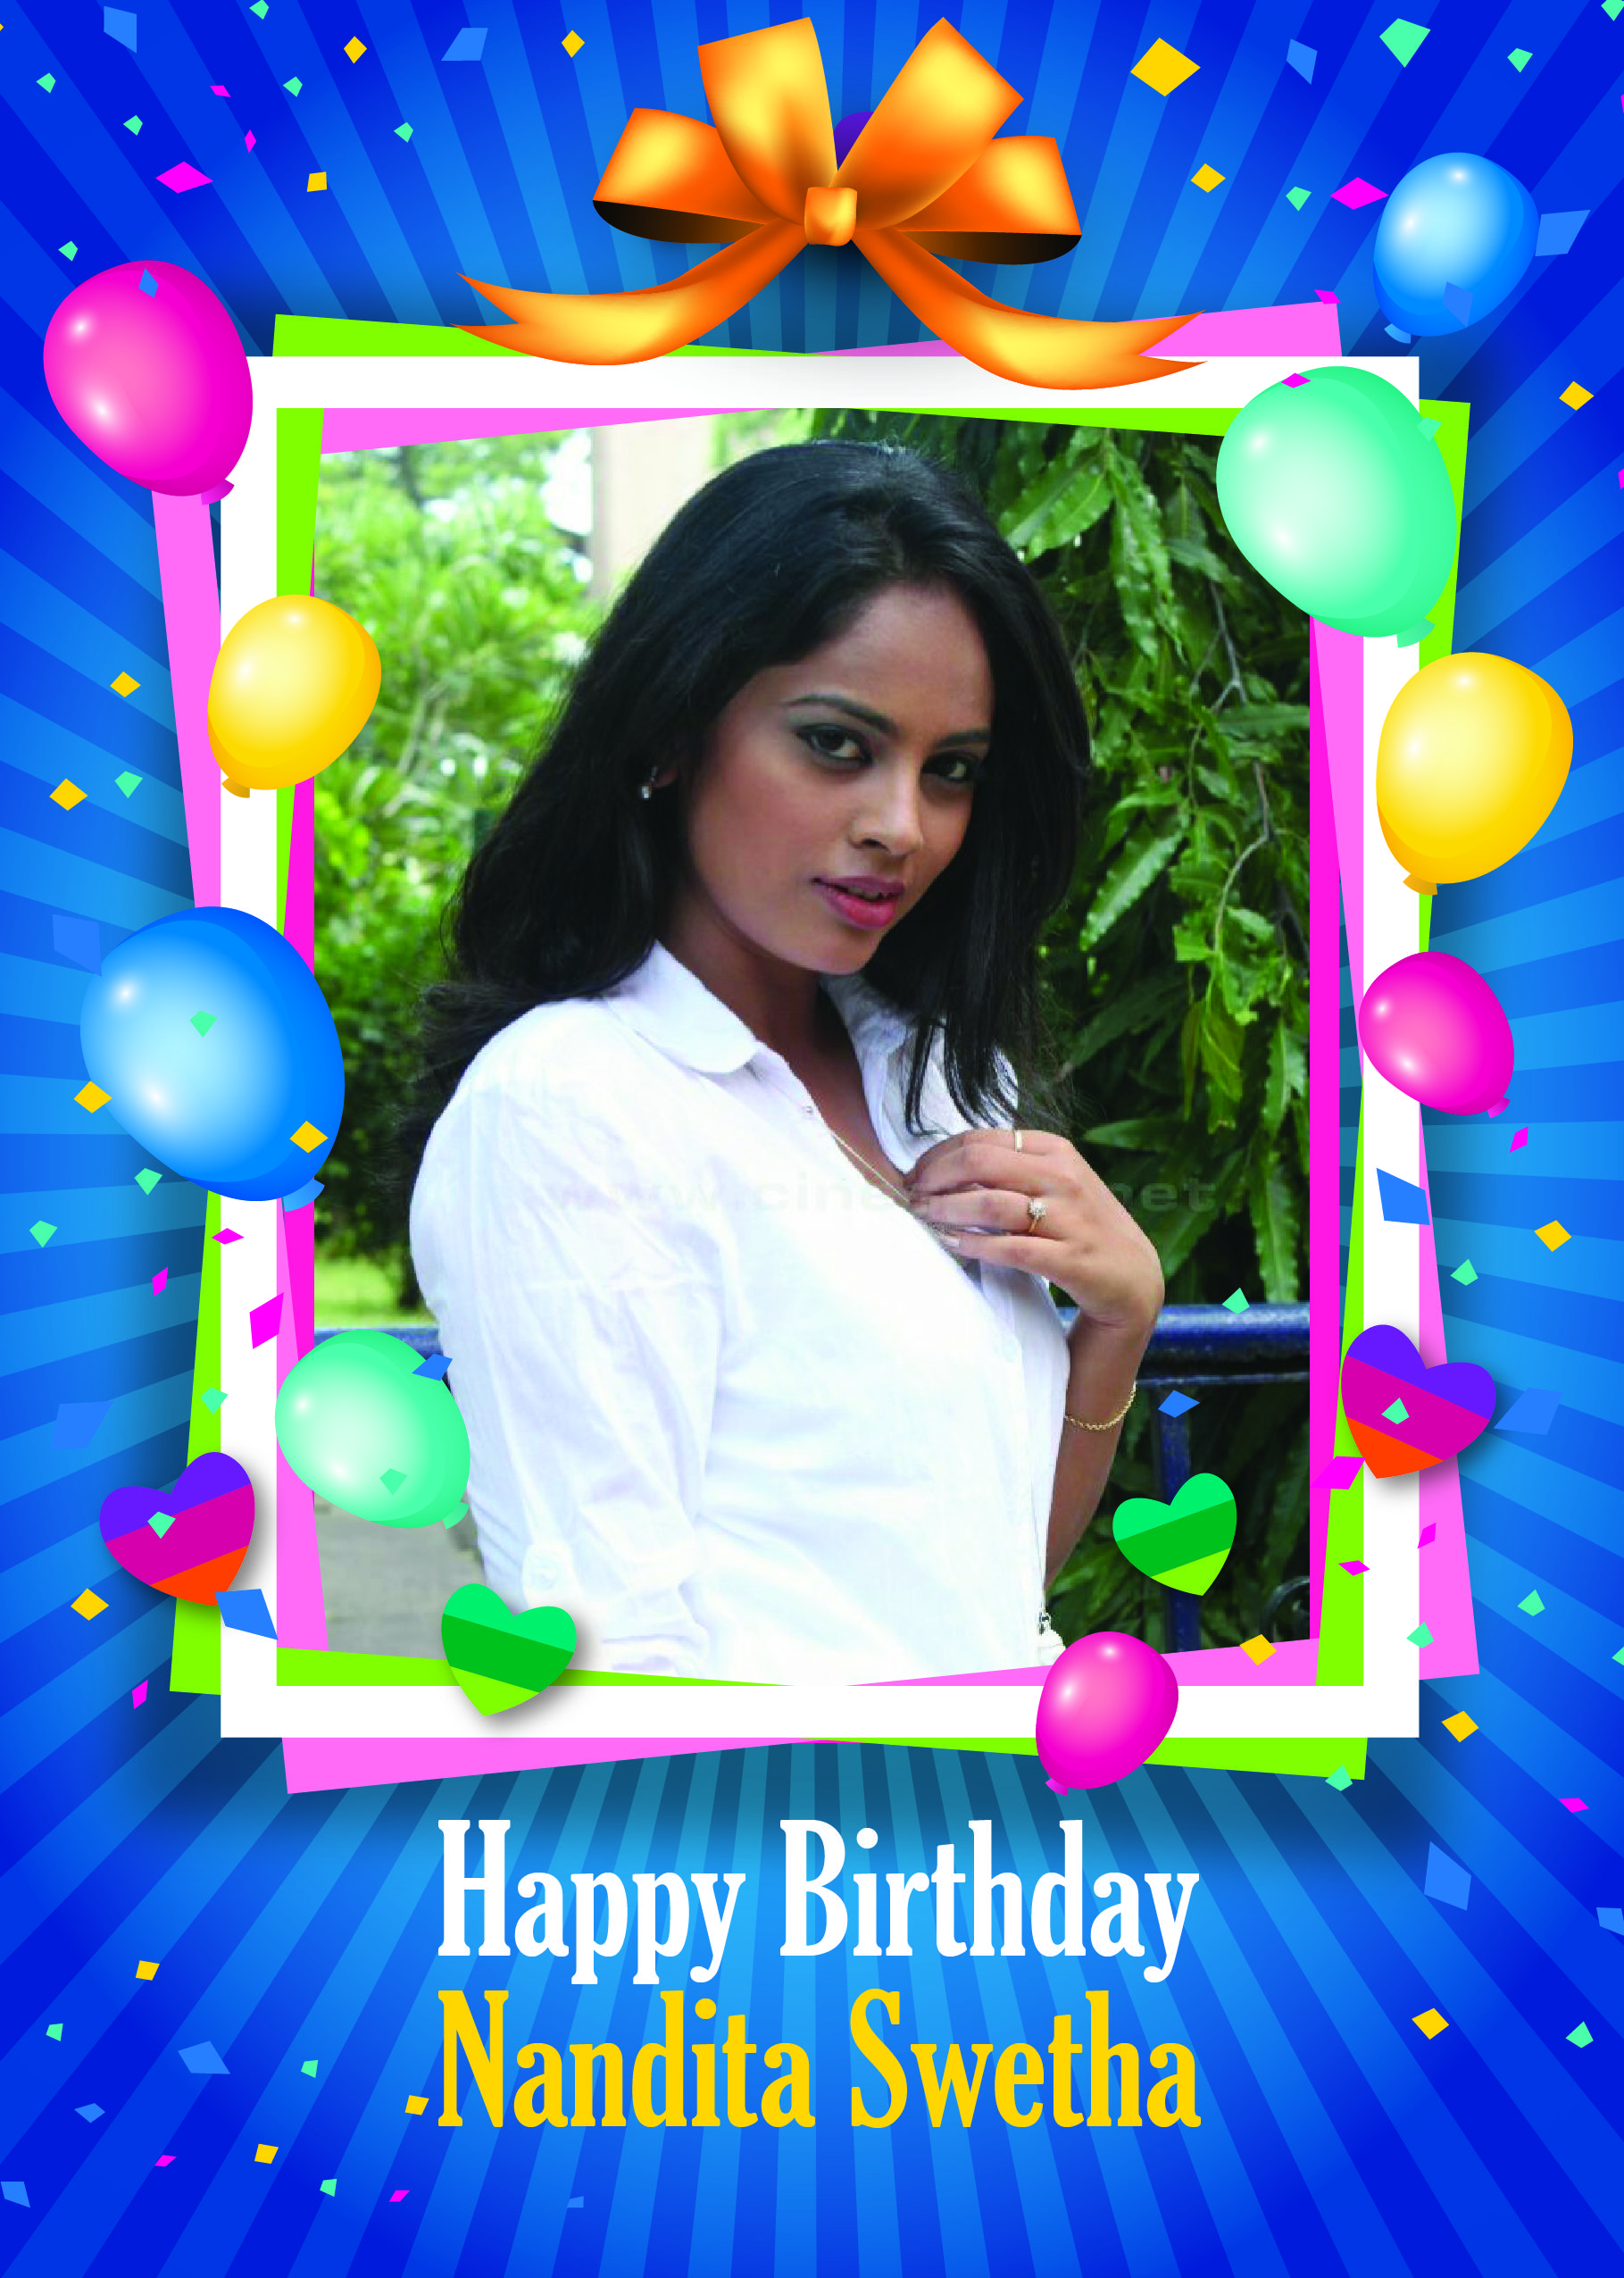 Wish You Many More Happy Returns Of The Day Nandita Swetha Best